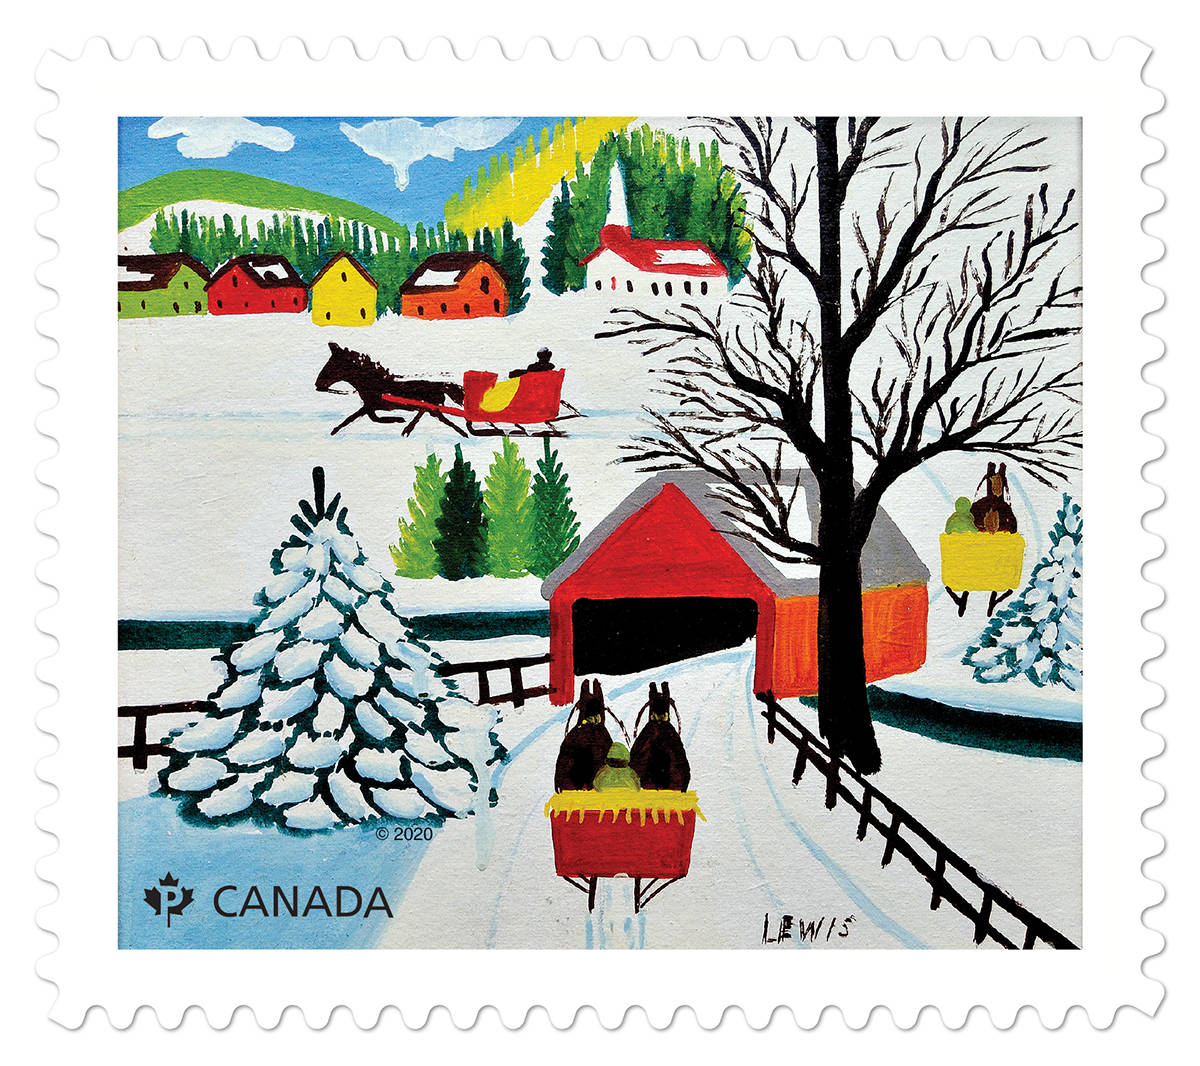 The Winter Sleigh Ride stamp from Canada Post for the 2020 holiday season. (Canada Post)